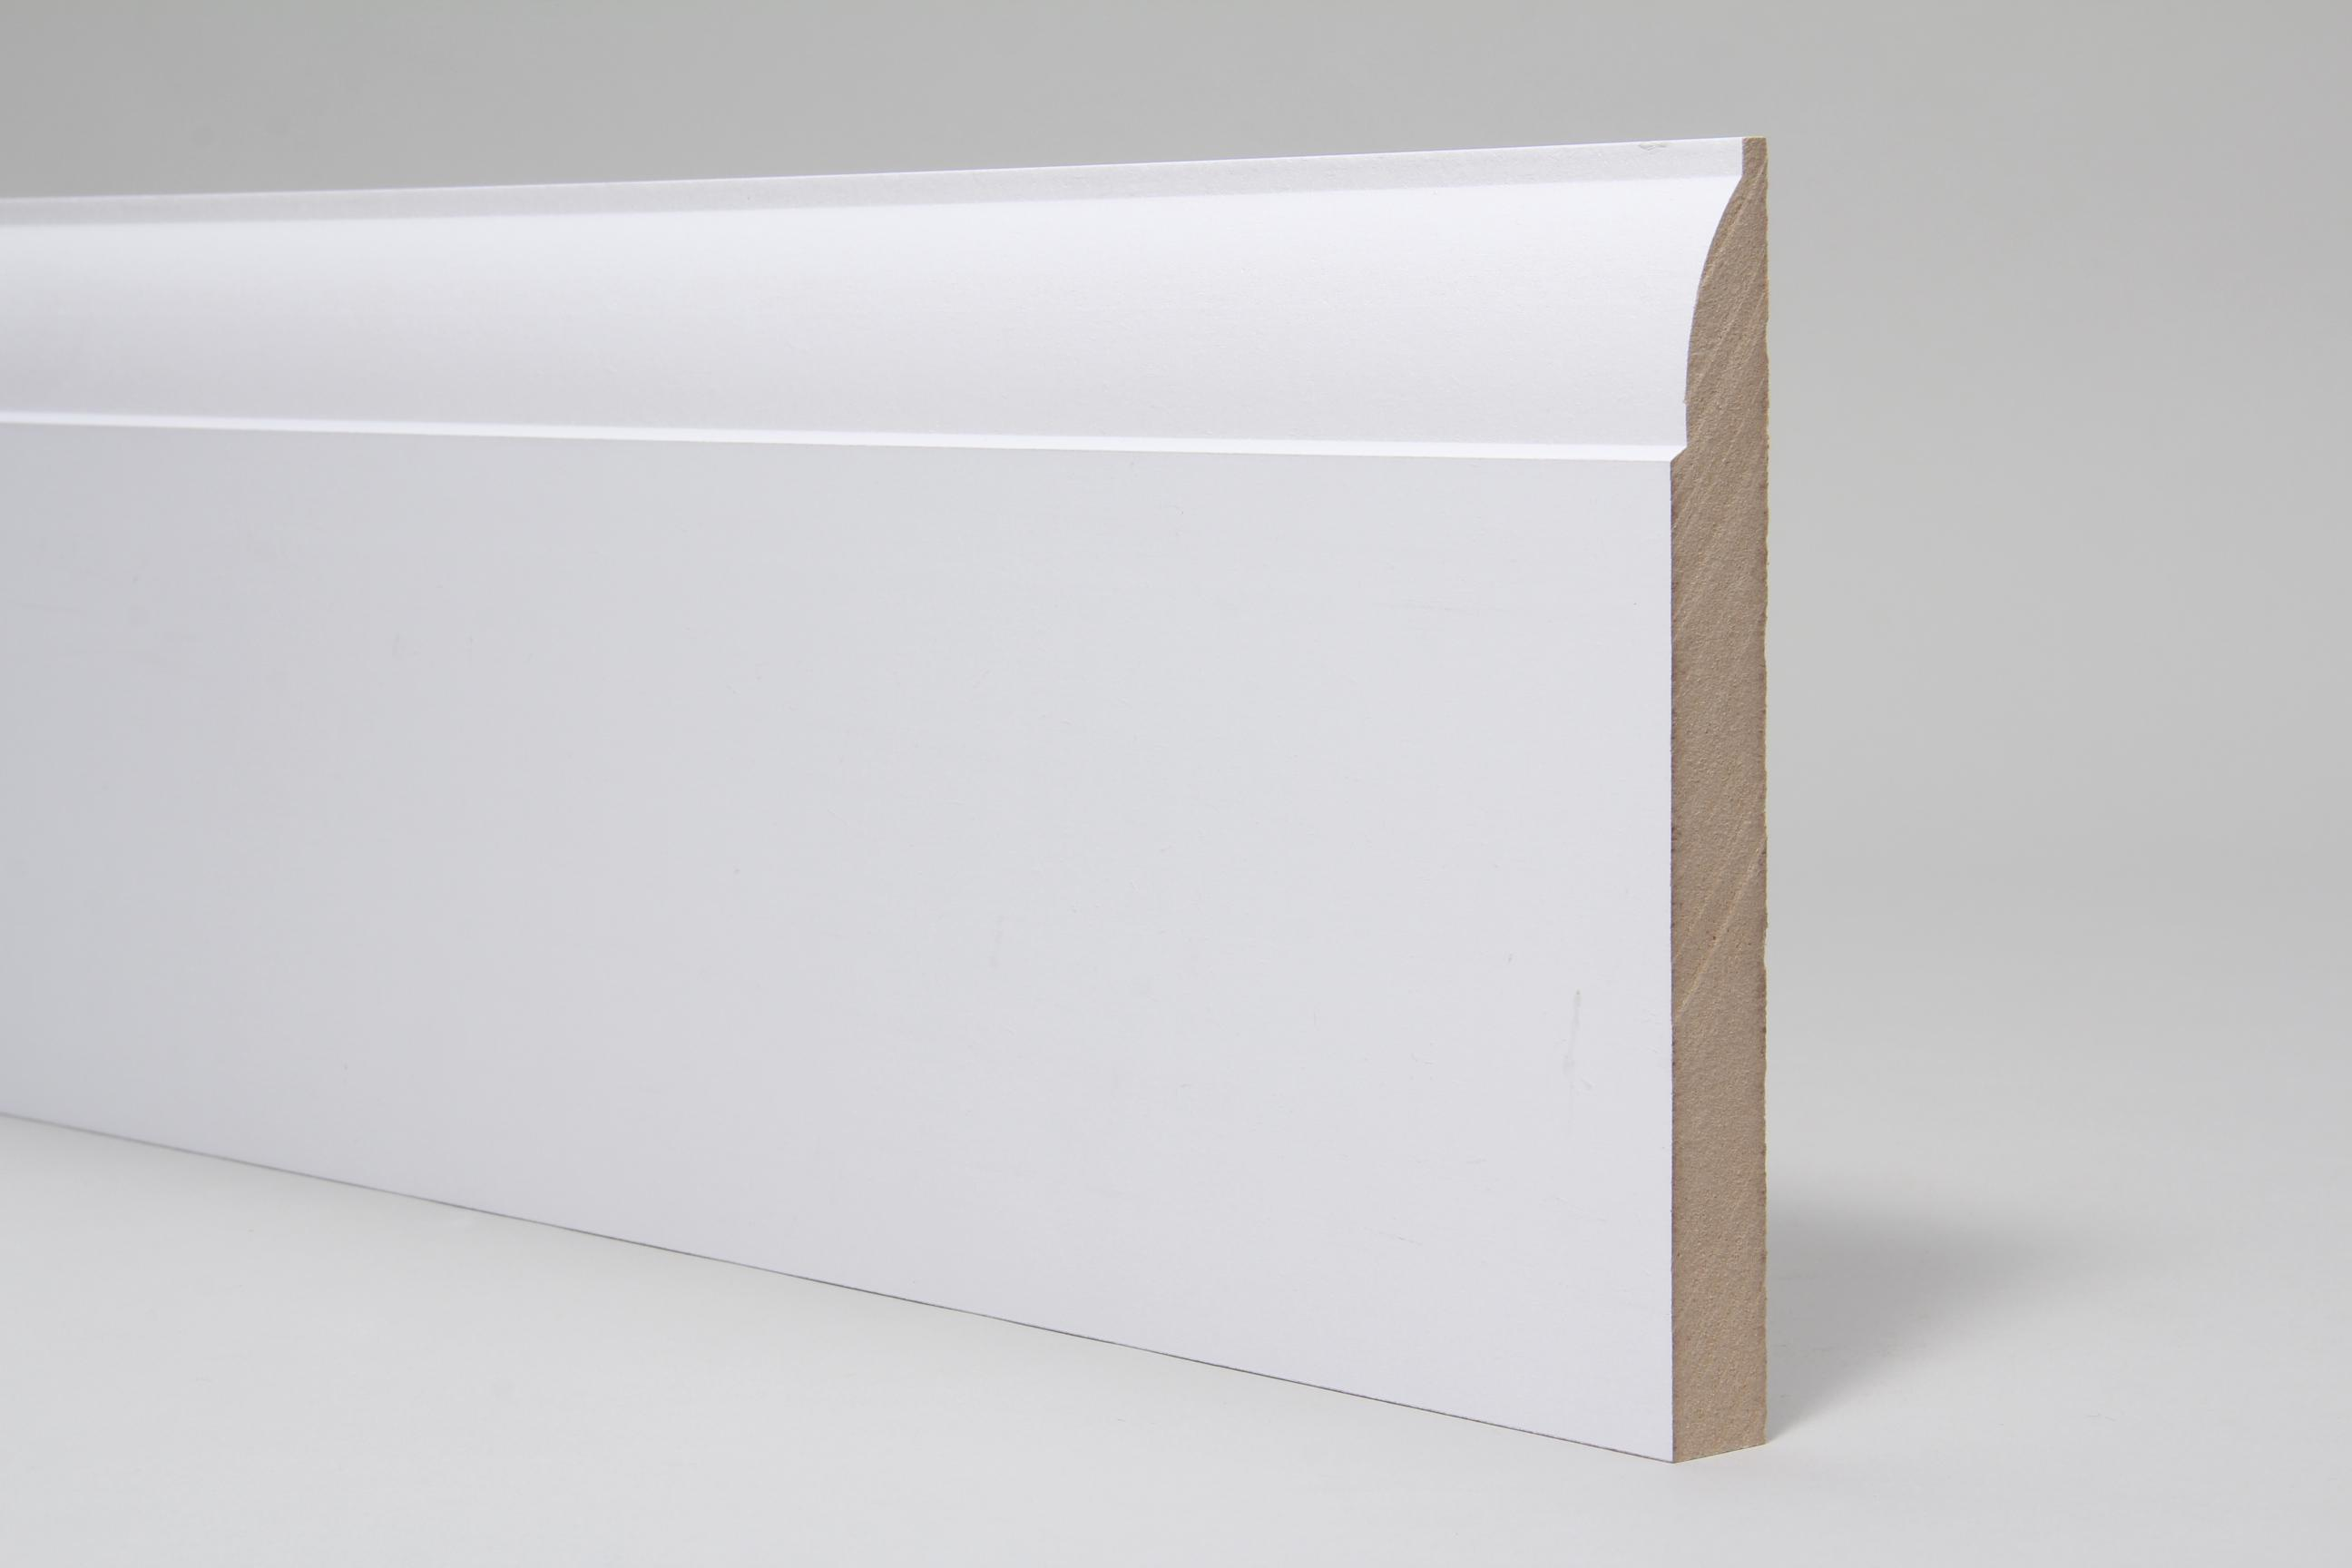 Ovolo 18mm x 168mm x 4.4 Mtr Primed